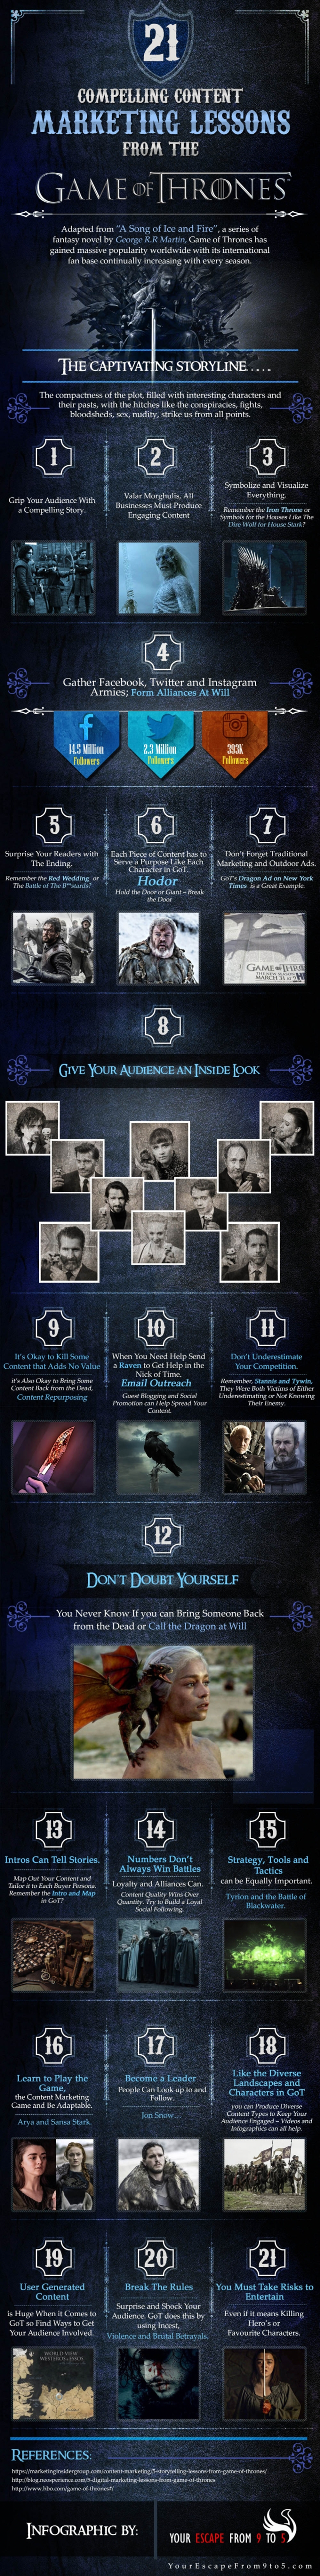 21 Compelling Content Marketing Lessons From The Game Of Thrones